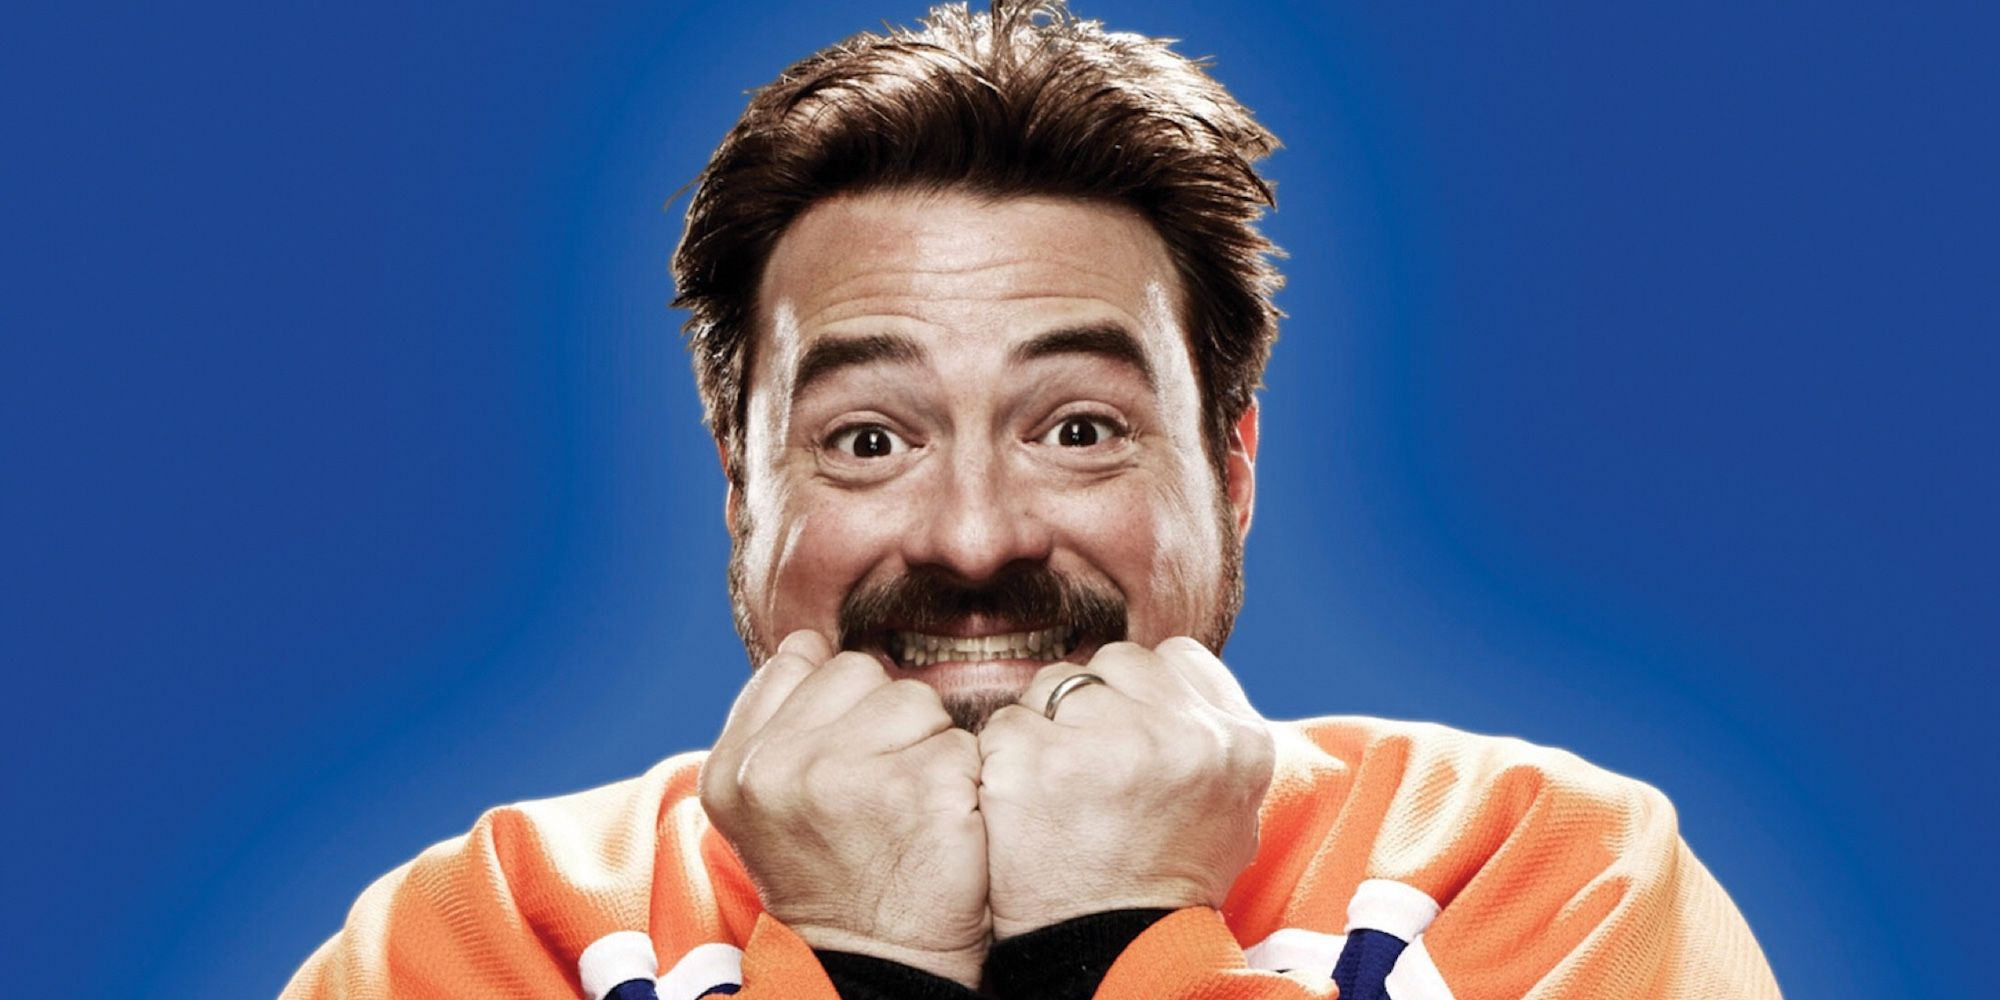 Kevin Smith Shows Off New Physique After Dropping 50+ Pounds